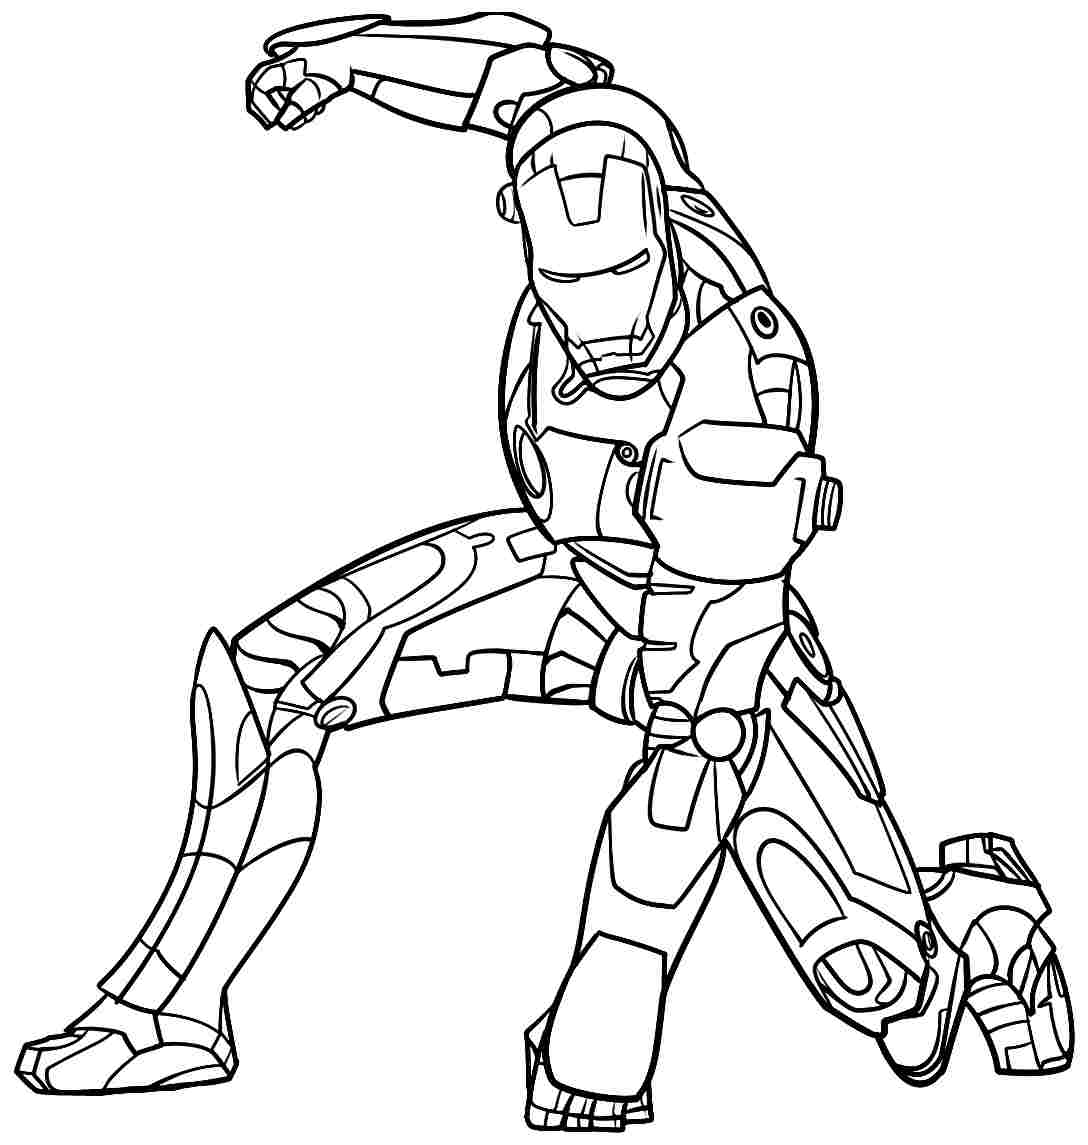 ironman images to color iron man coloring pages color to ironman images